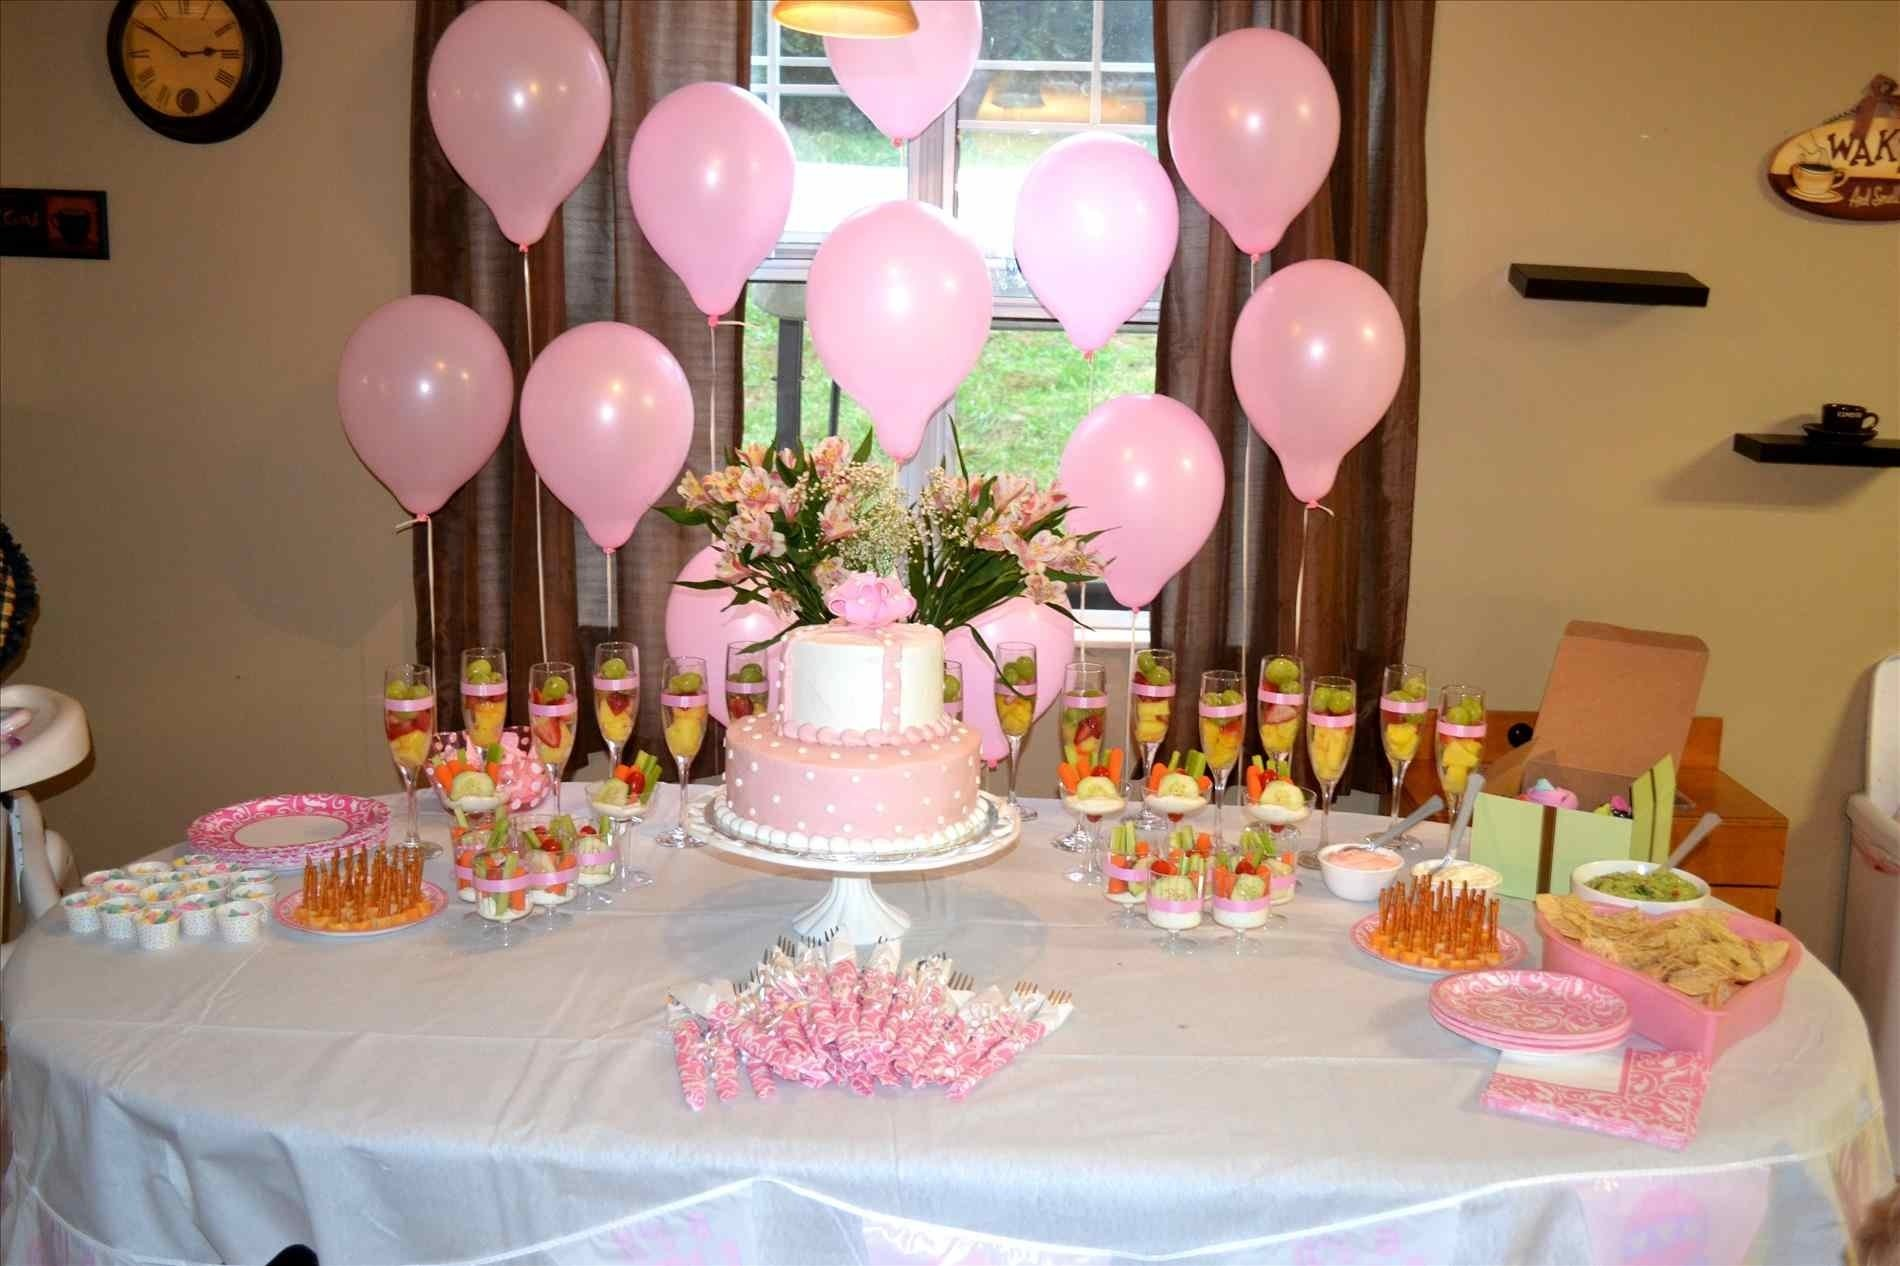 10 Nice Baby Shower Balloon Decoration Ideas ny baby shower balloons decorations ideas find this pin and more 2020